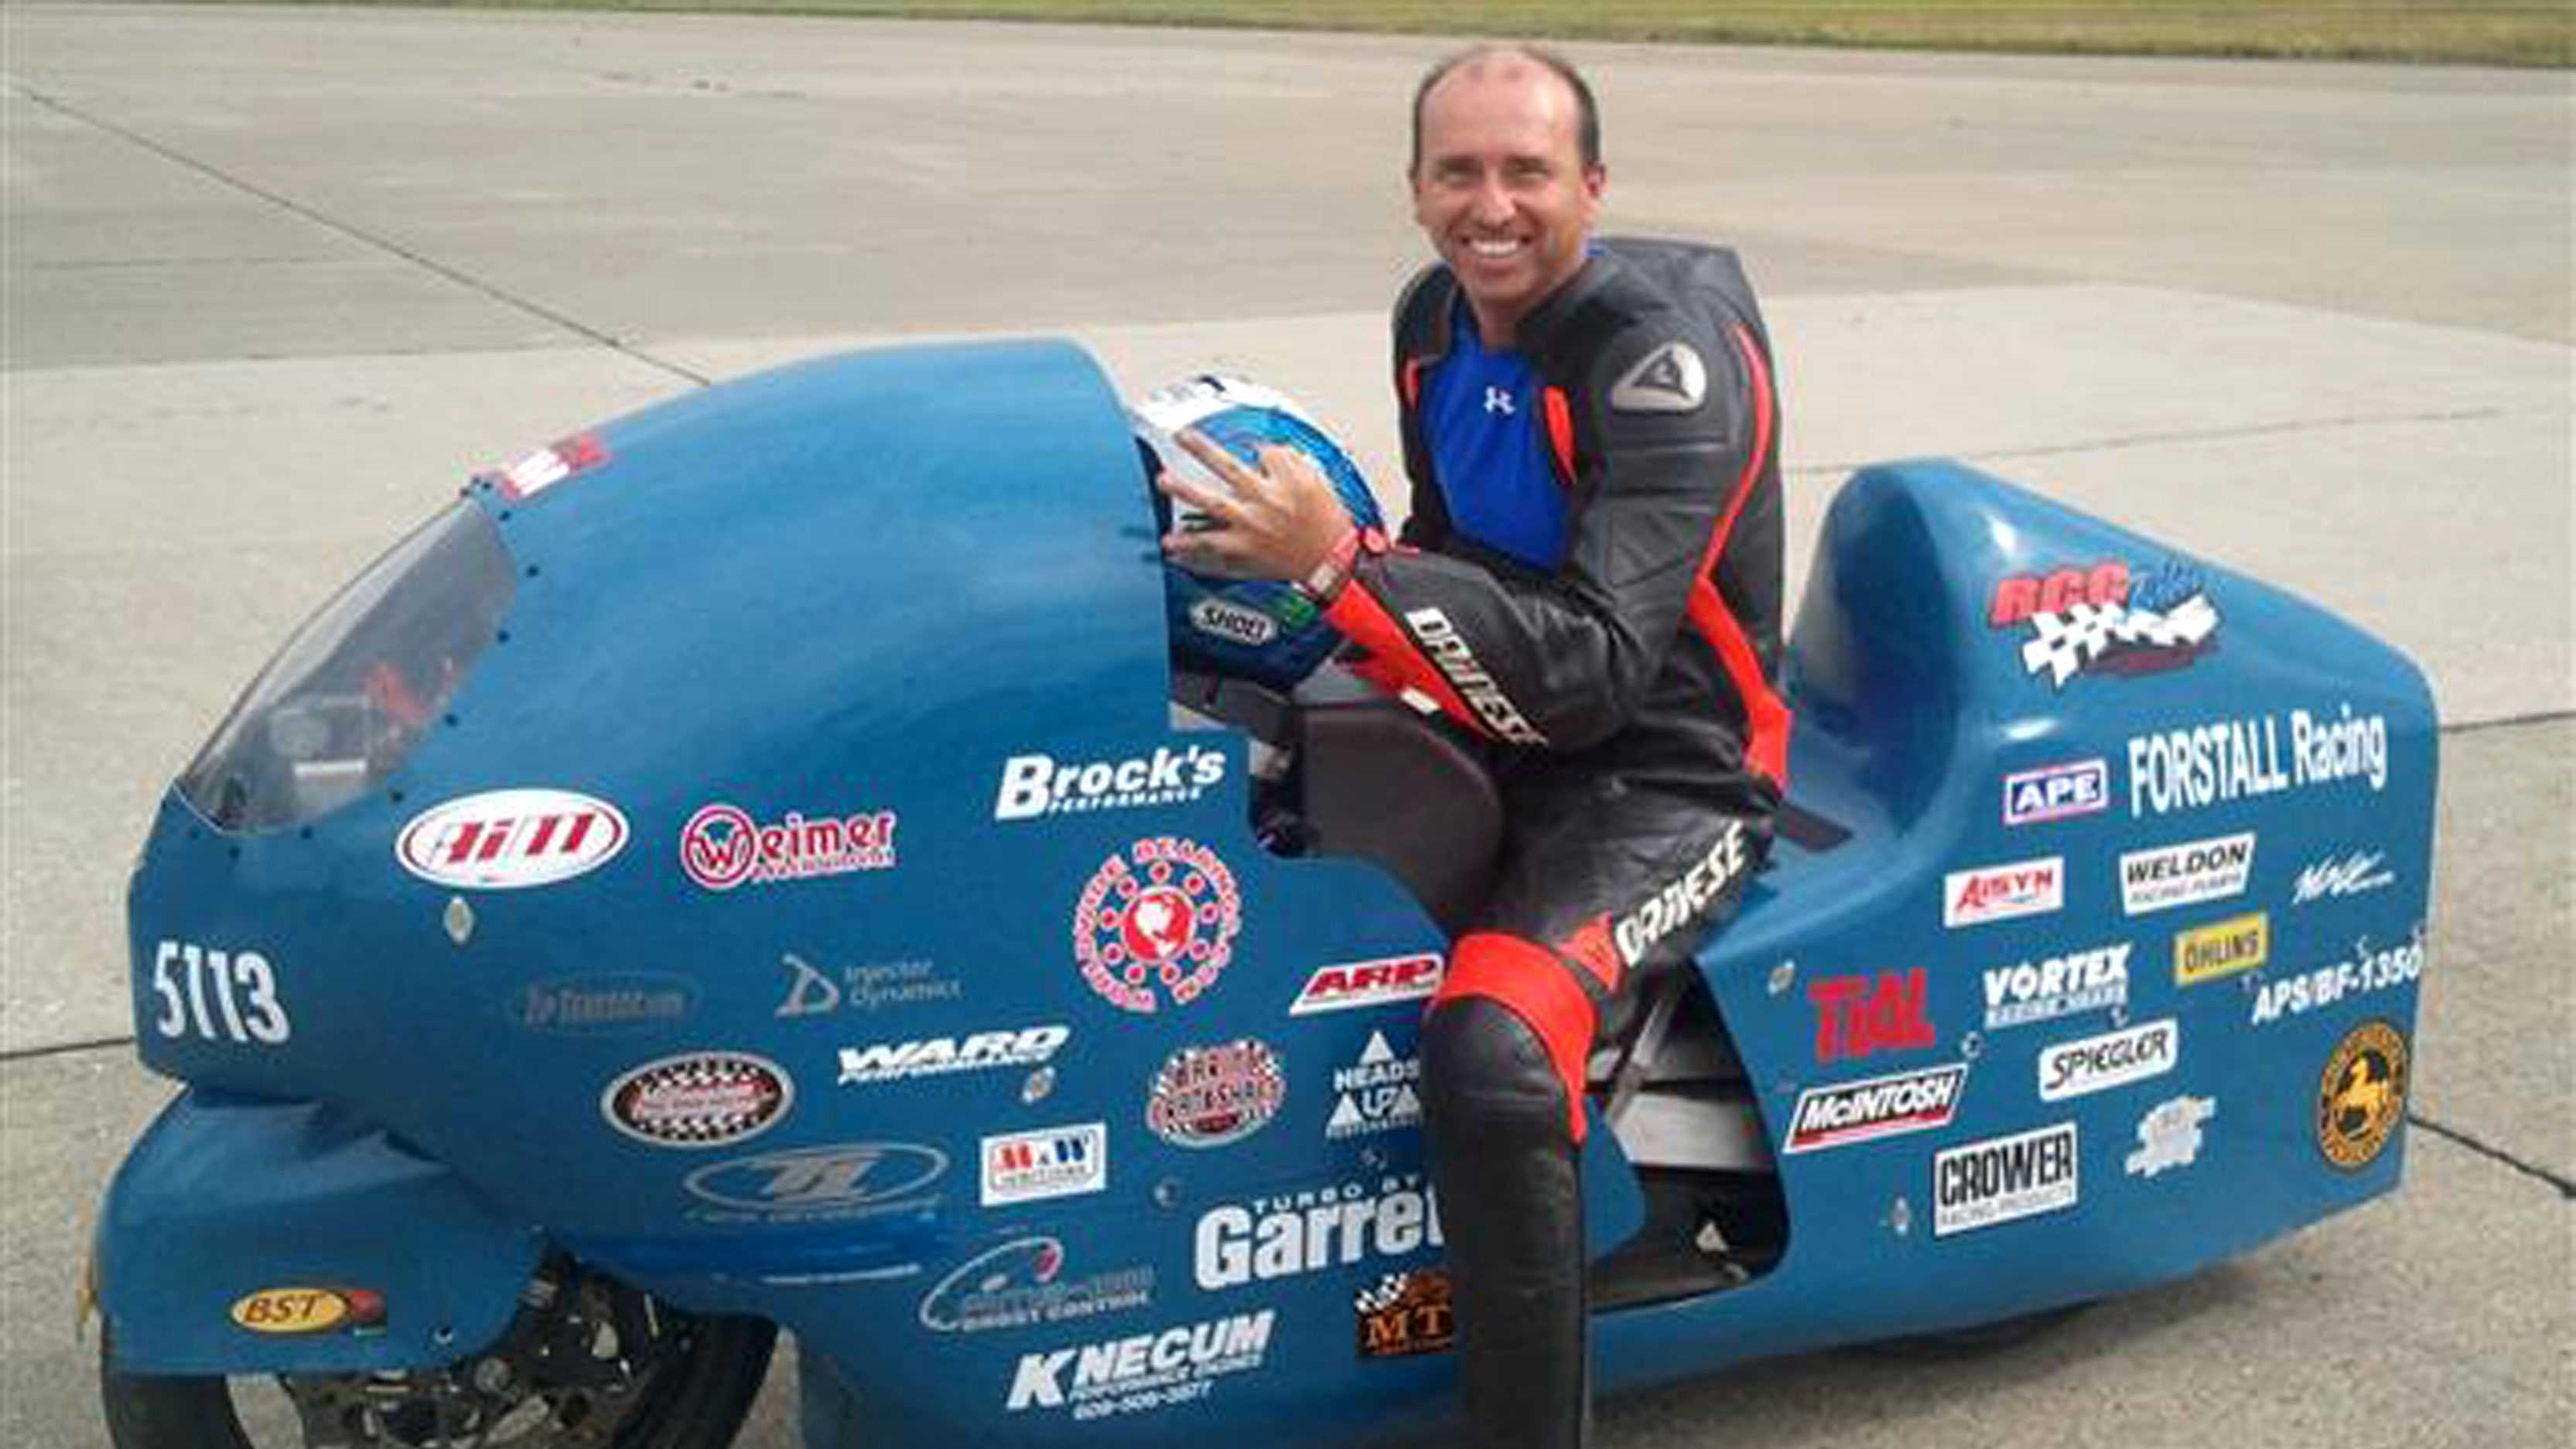 In this 2011 photo provided by the Loring Timing Association the late Bill Warner, 44, of Wimauma, Fla., holds his helmet while sitting on a motorcycle.